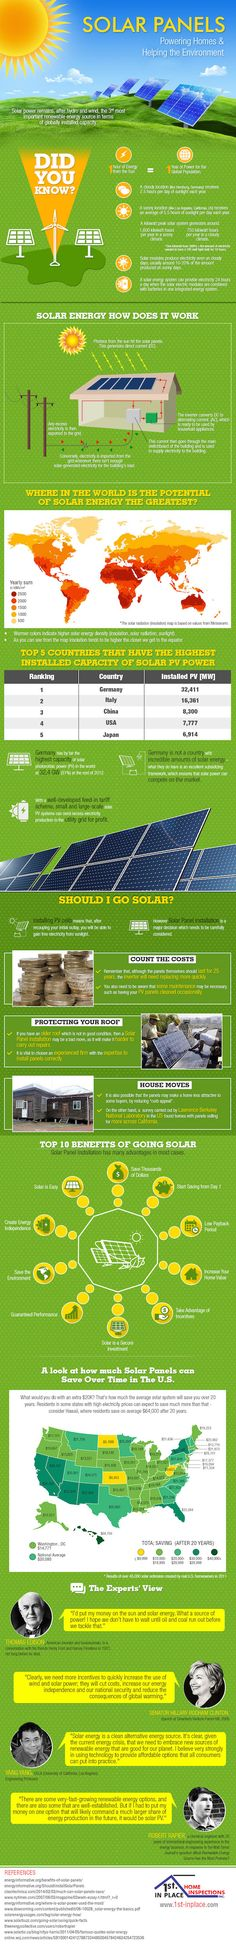 solar panels, solar power, green energy, infographic, reader submitted content, solar energy, solar cells,